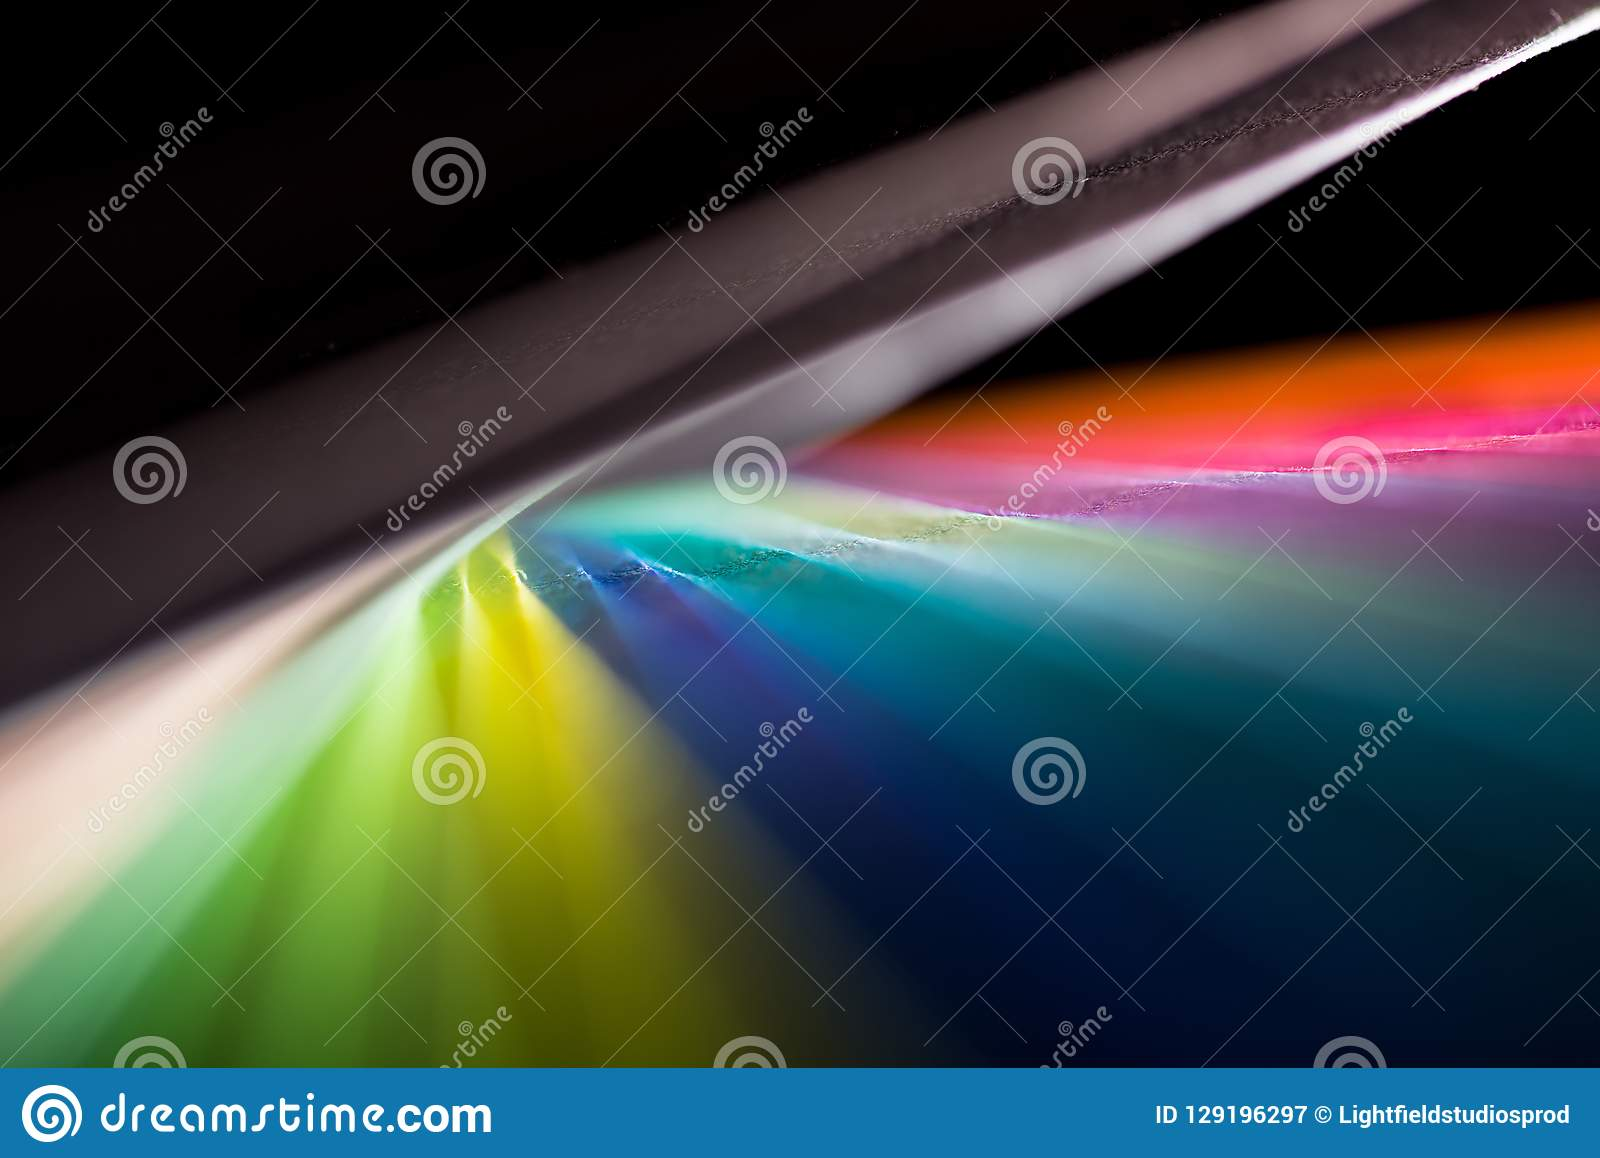 Dynamic Composition Of Colorful Papers Stock Image - Image